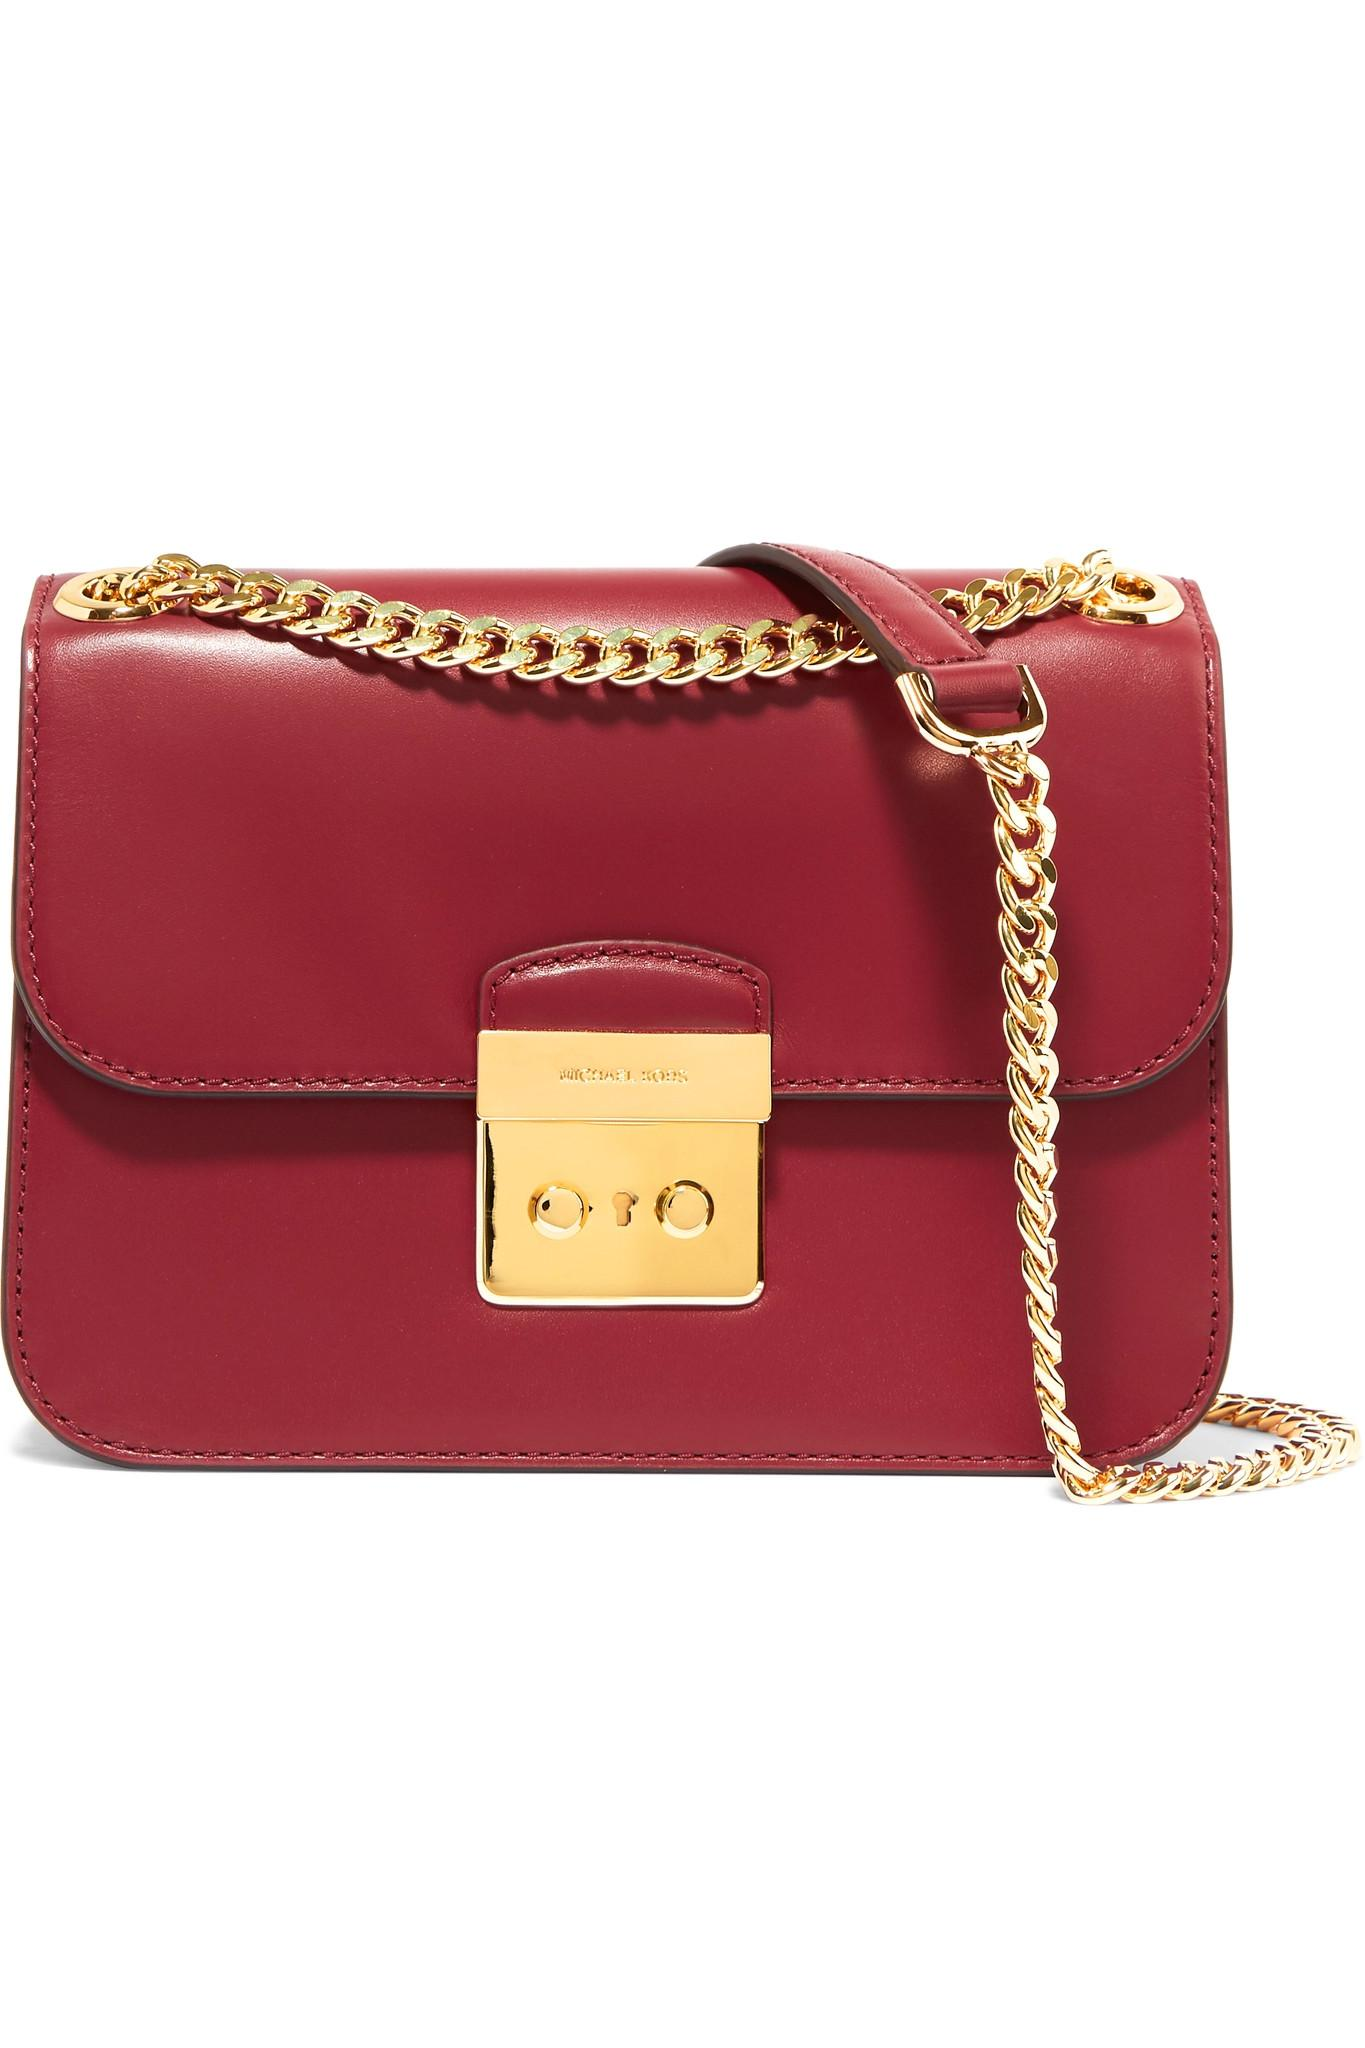 6d50a58c7985 MICHAEL Michael Kors Sloan Editor Leather Shoulder Bag in Red - Lyst